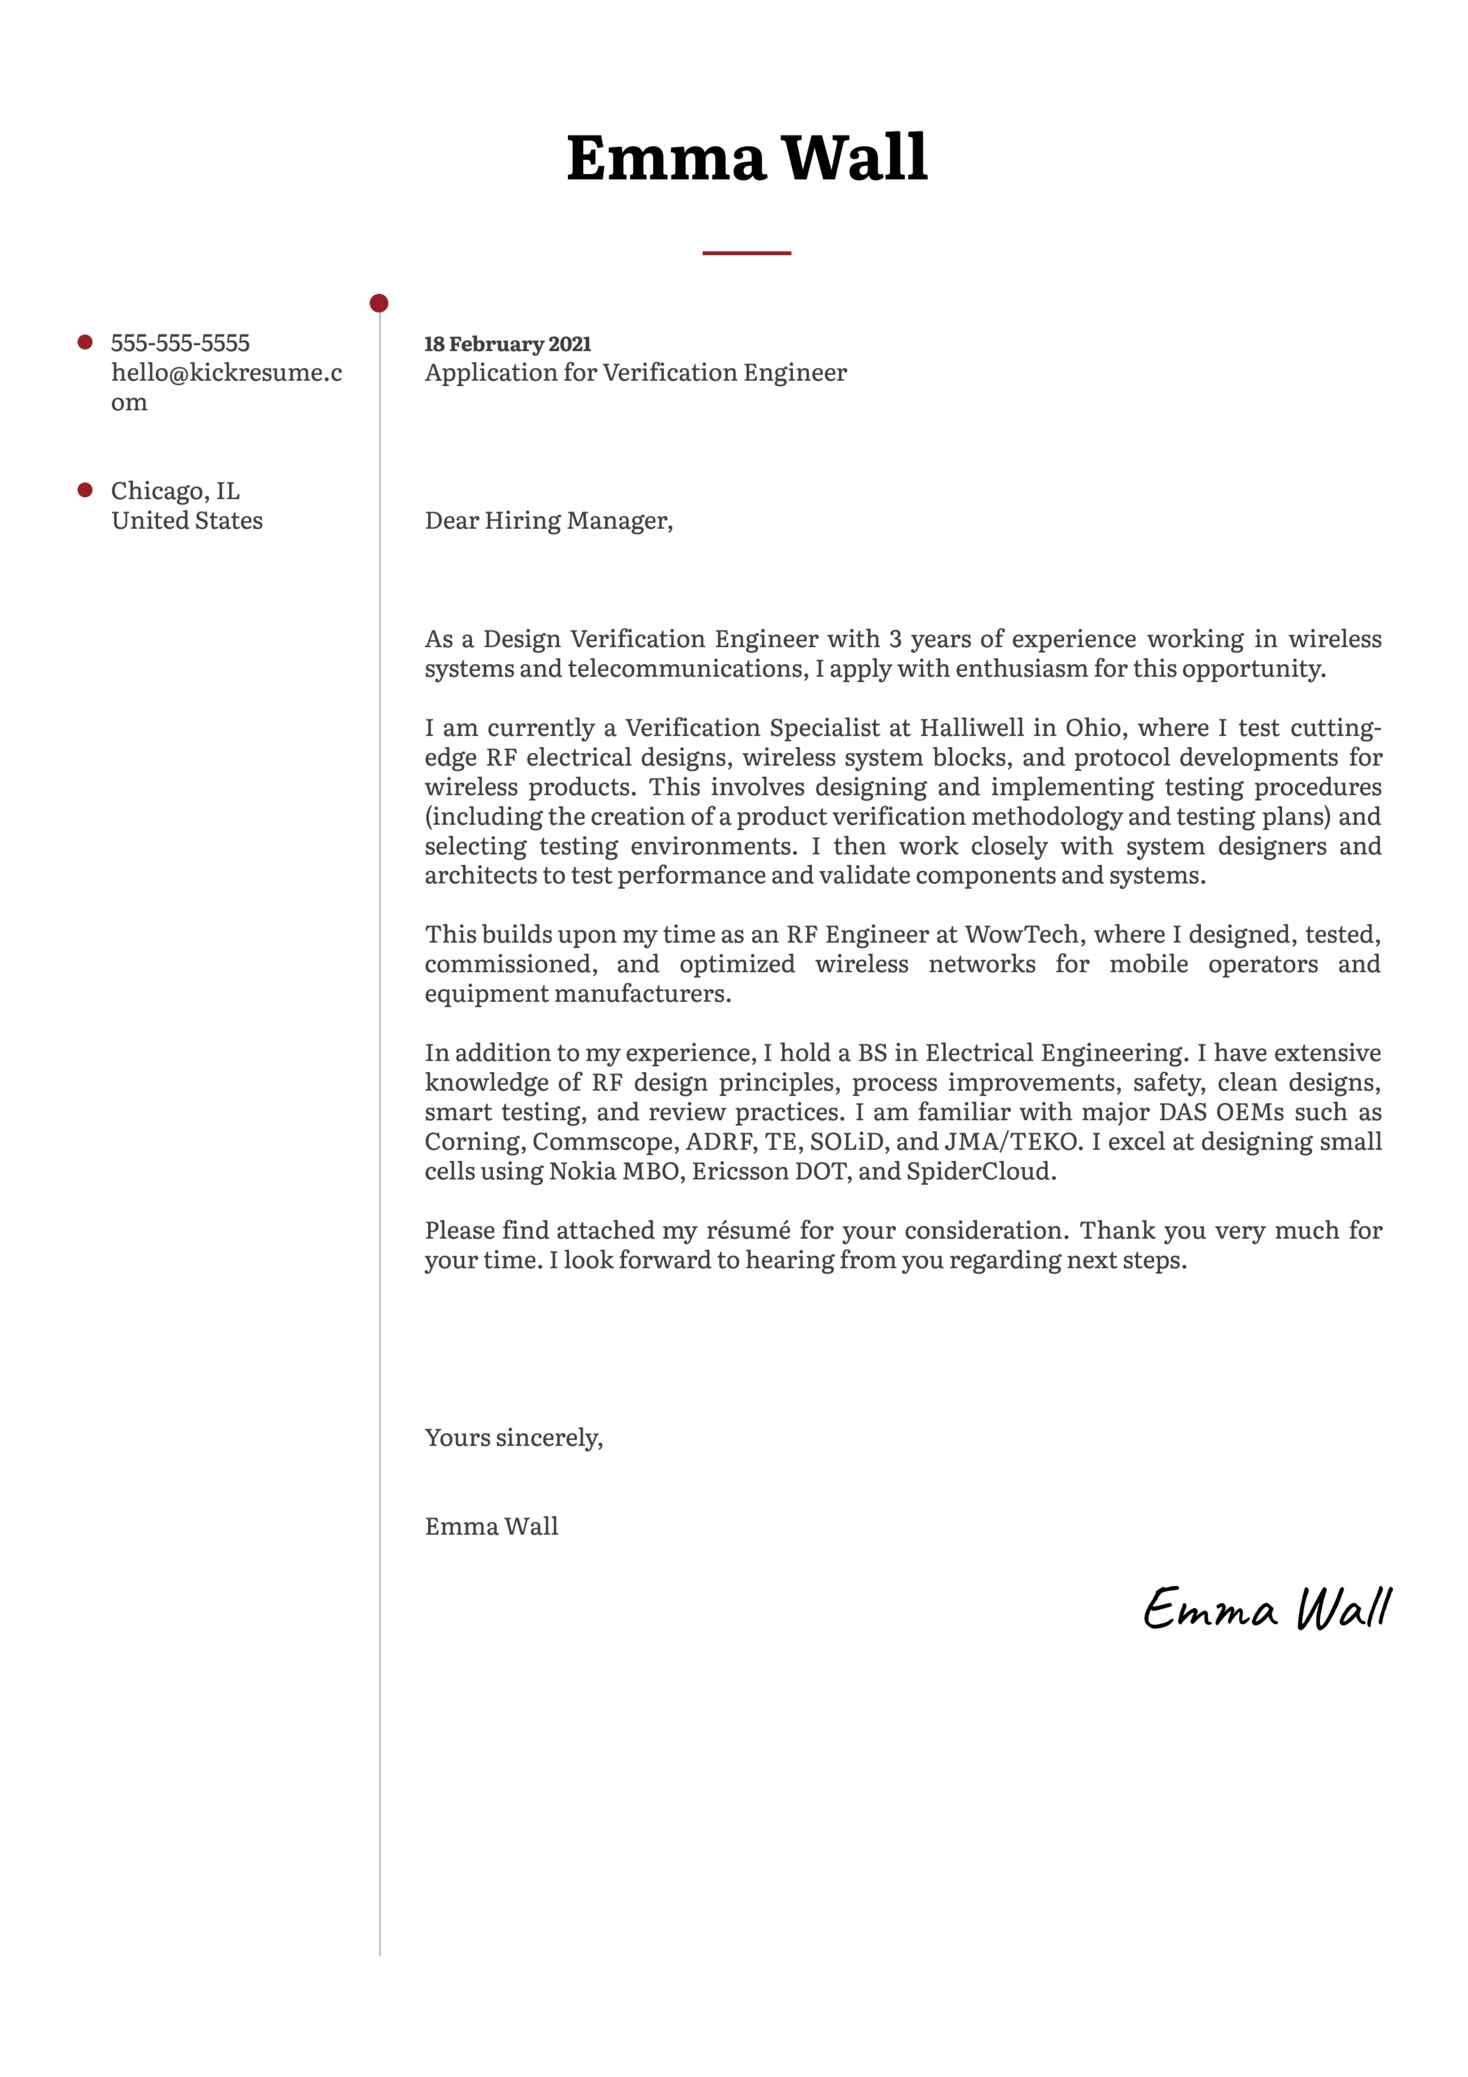 Verification Engineer Cover Letter Example